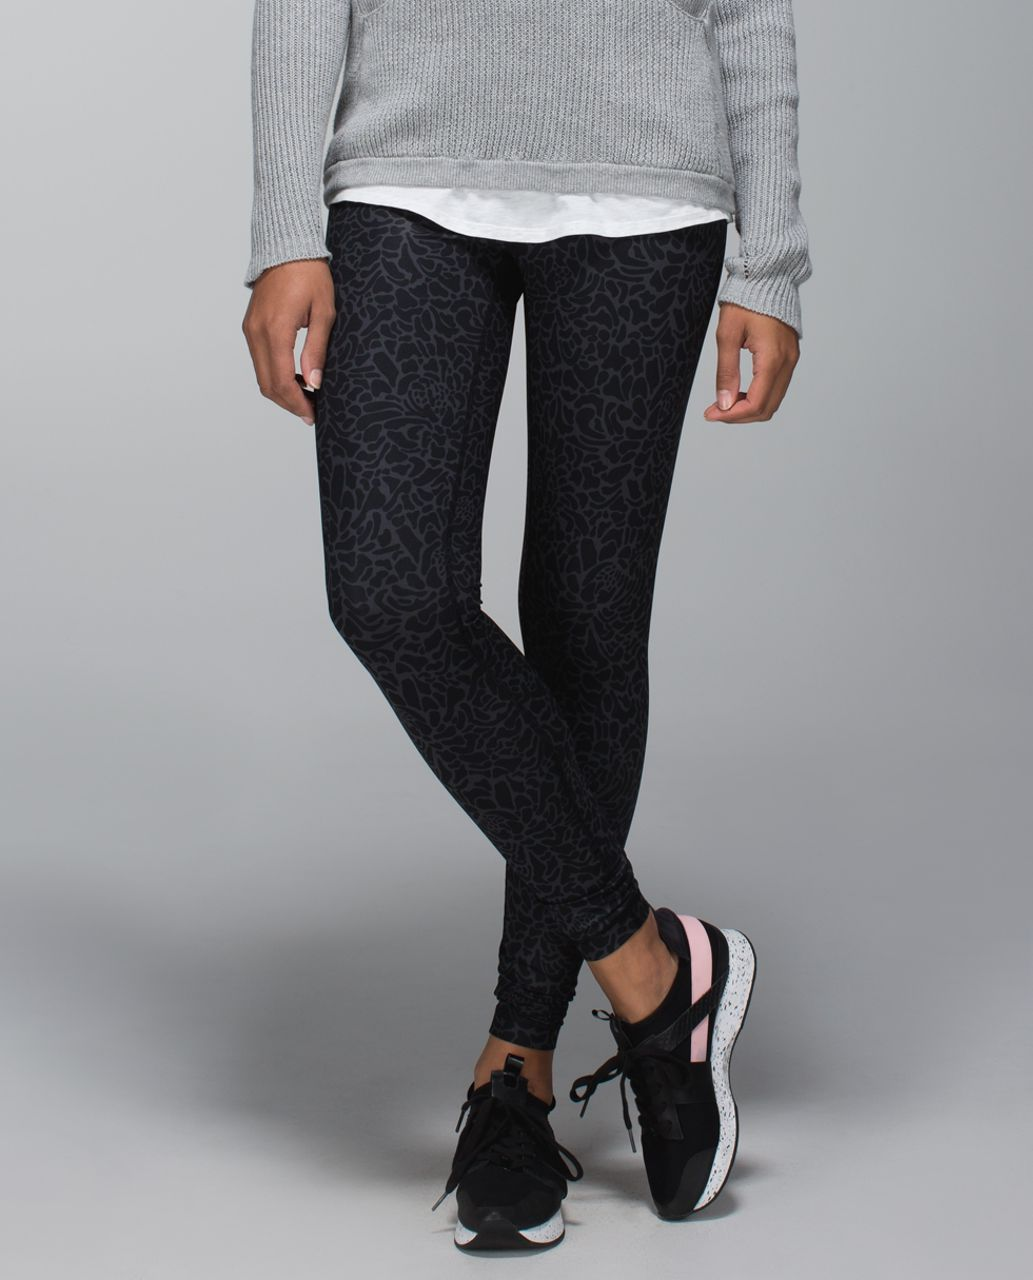 Lululemon Wunder Under Pant *Full-On Luxtreme (Roll Down) - Petal Camo Printed Black Deep Coal